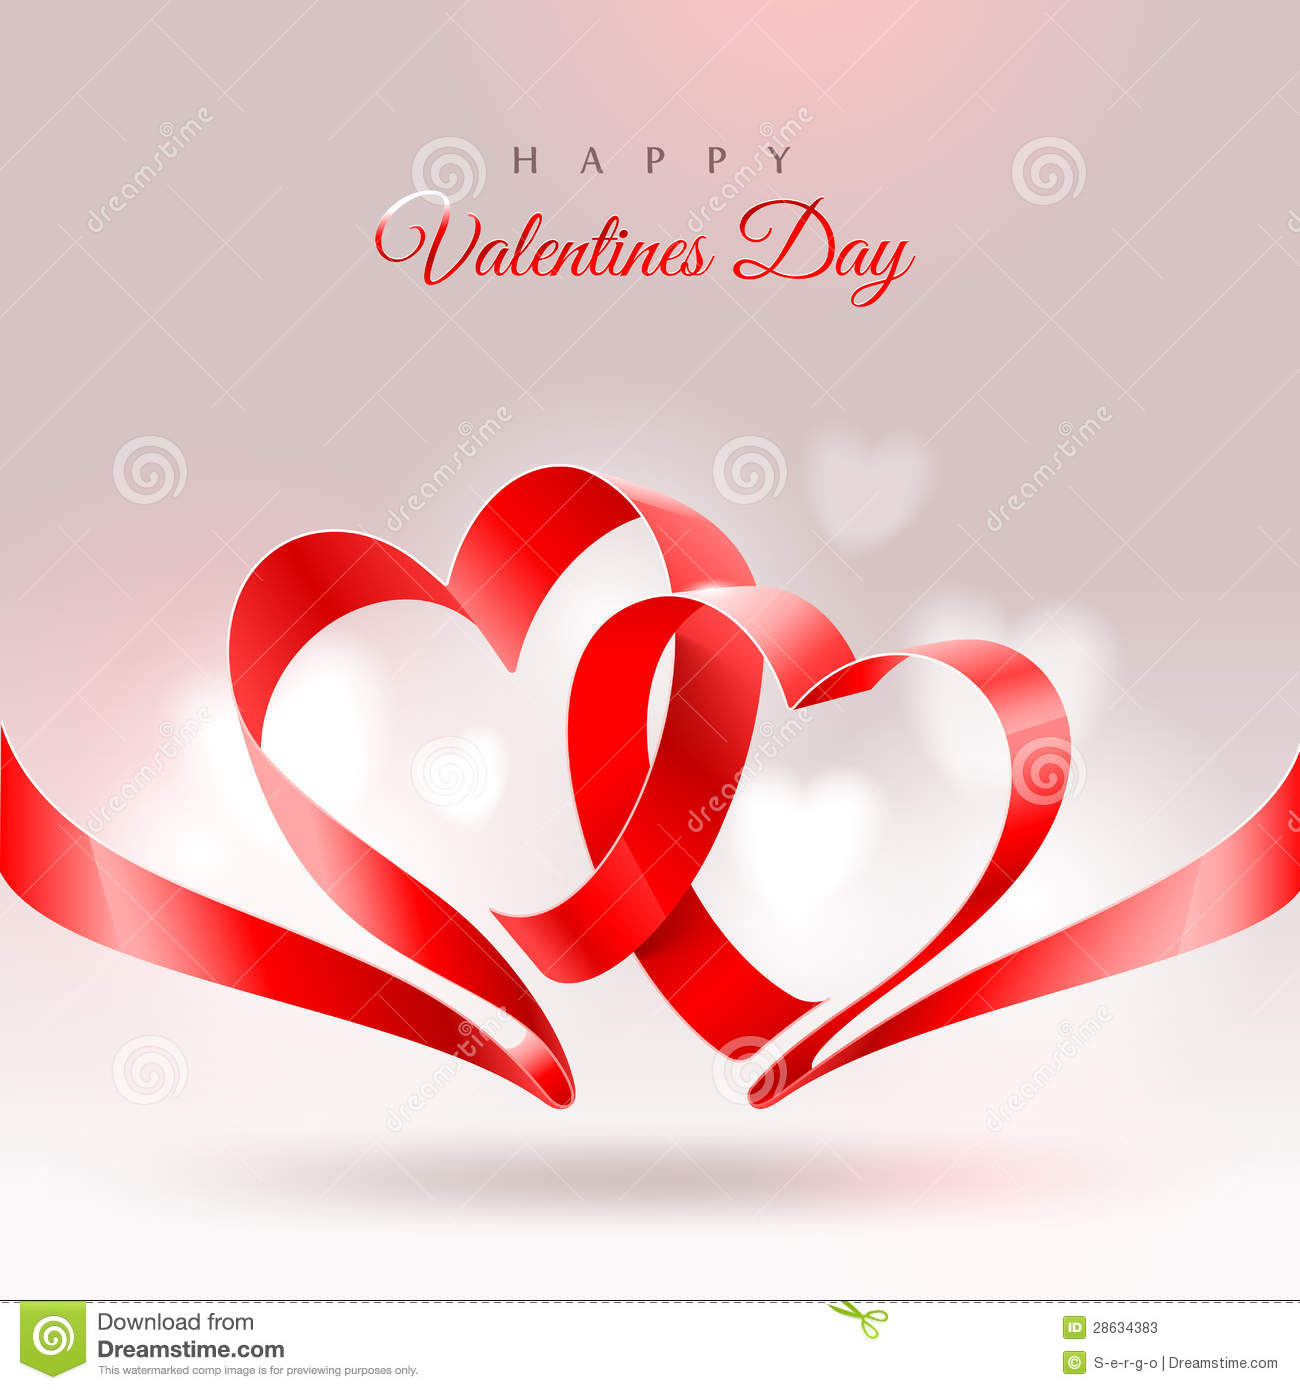 valentines day greeting card stock vector illustration of amour